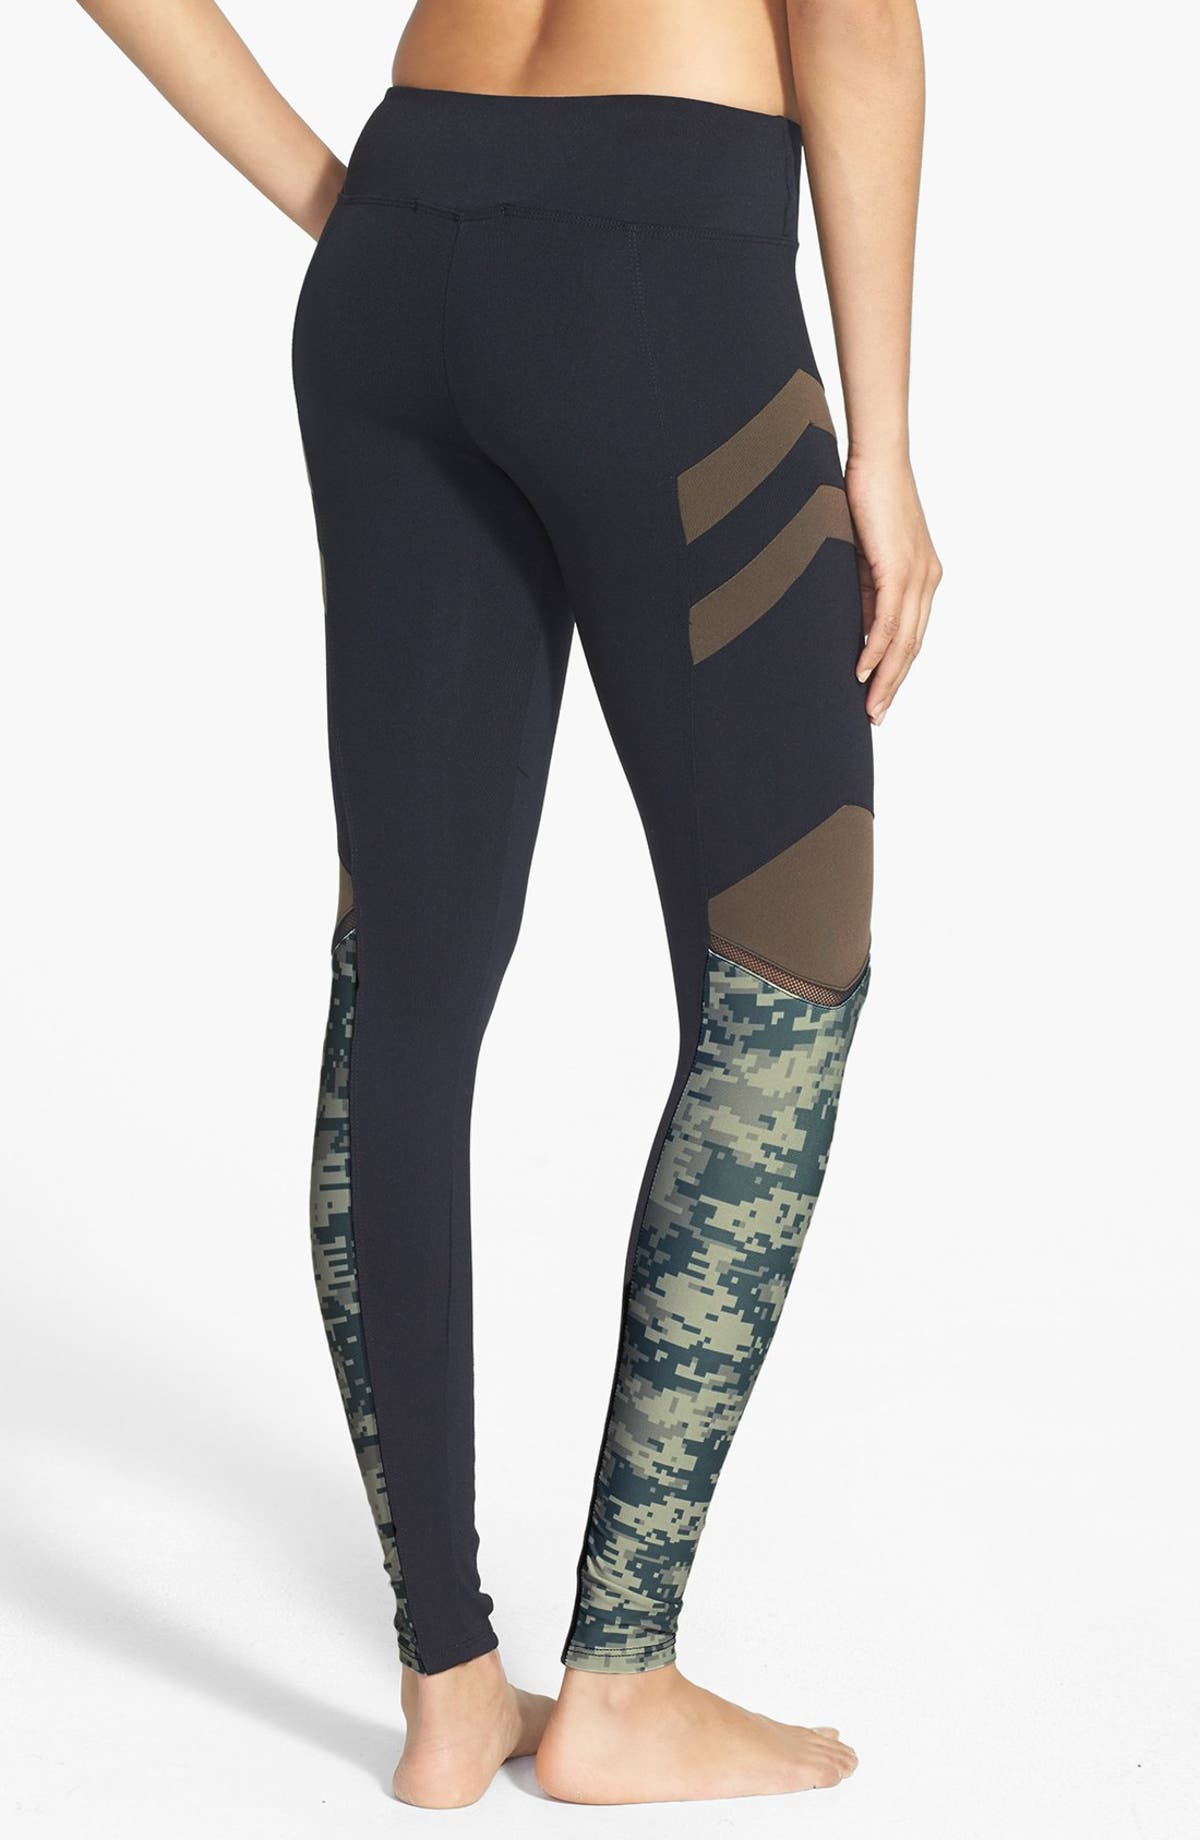 8541952a31 Solow 'Digital Camo' Print Leggings (Online Only) | Nordstrom